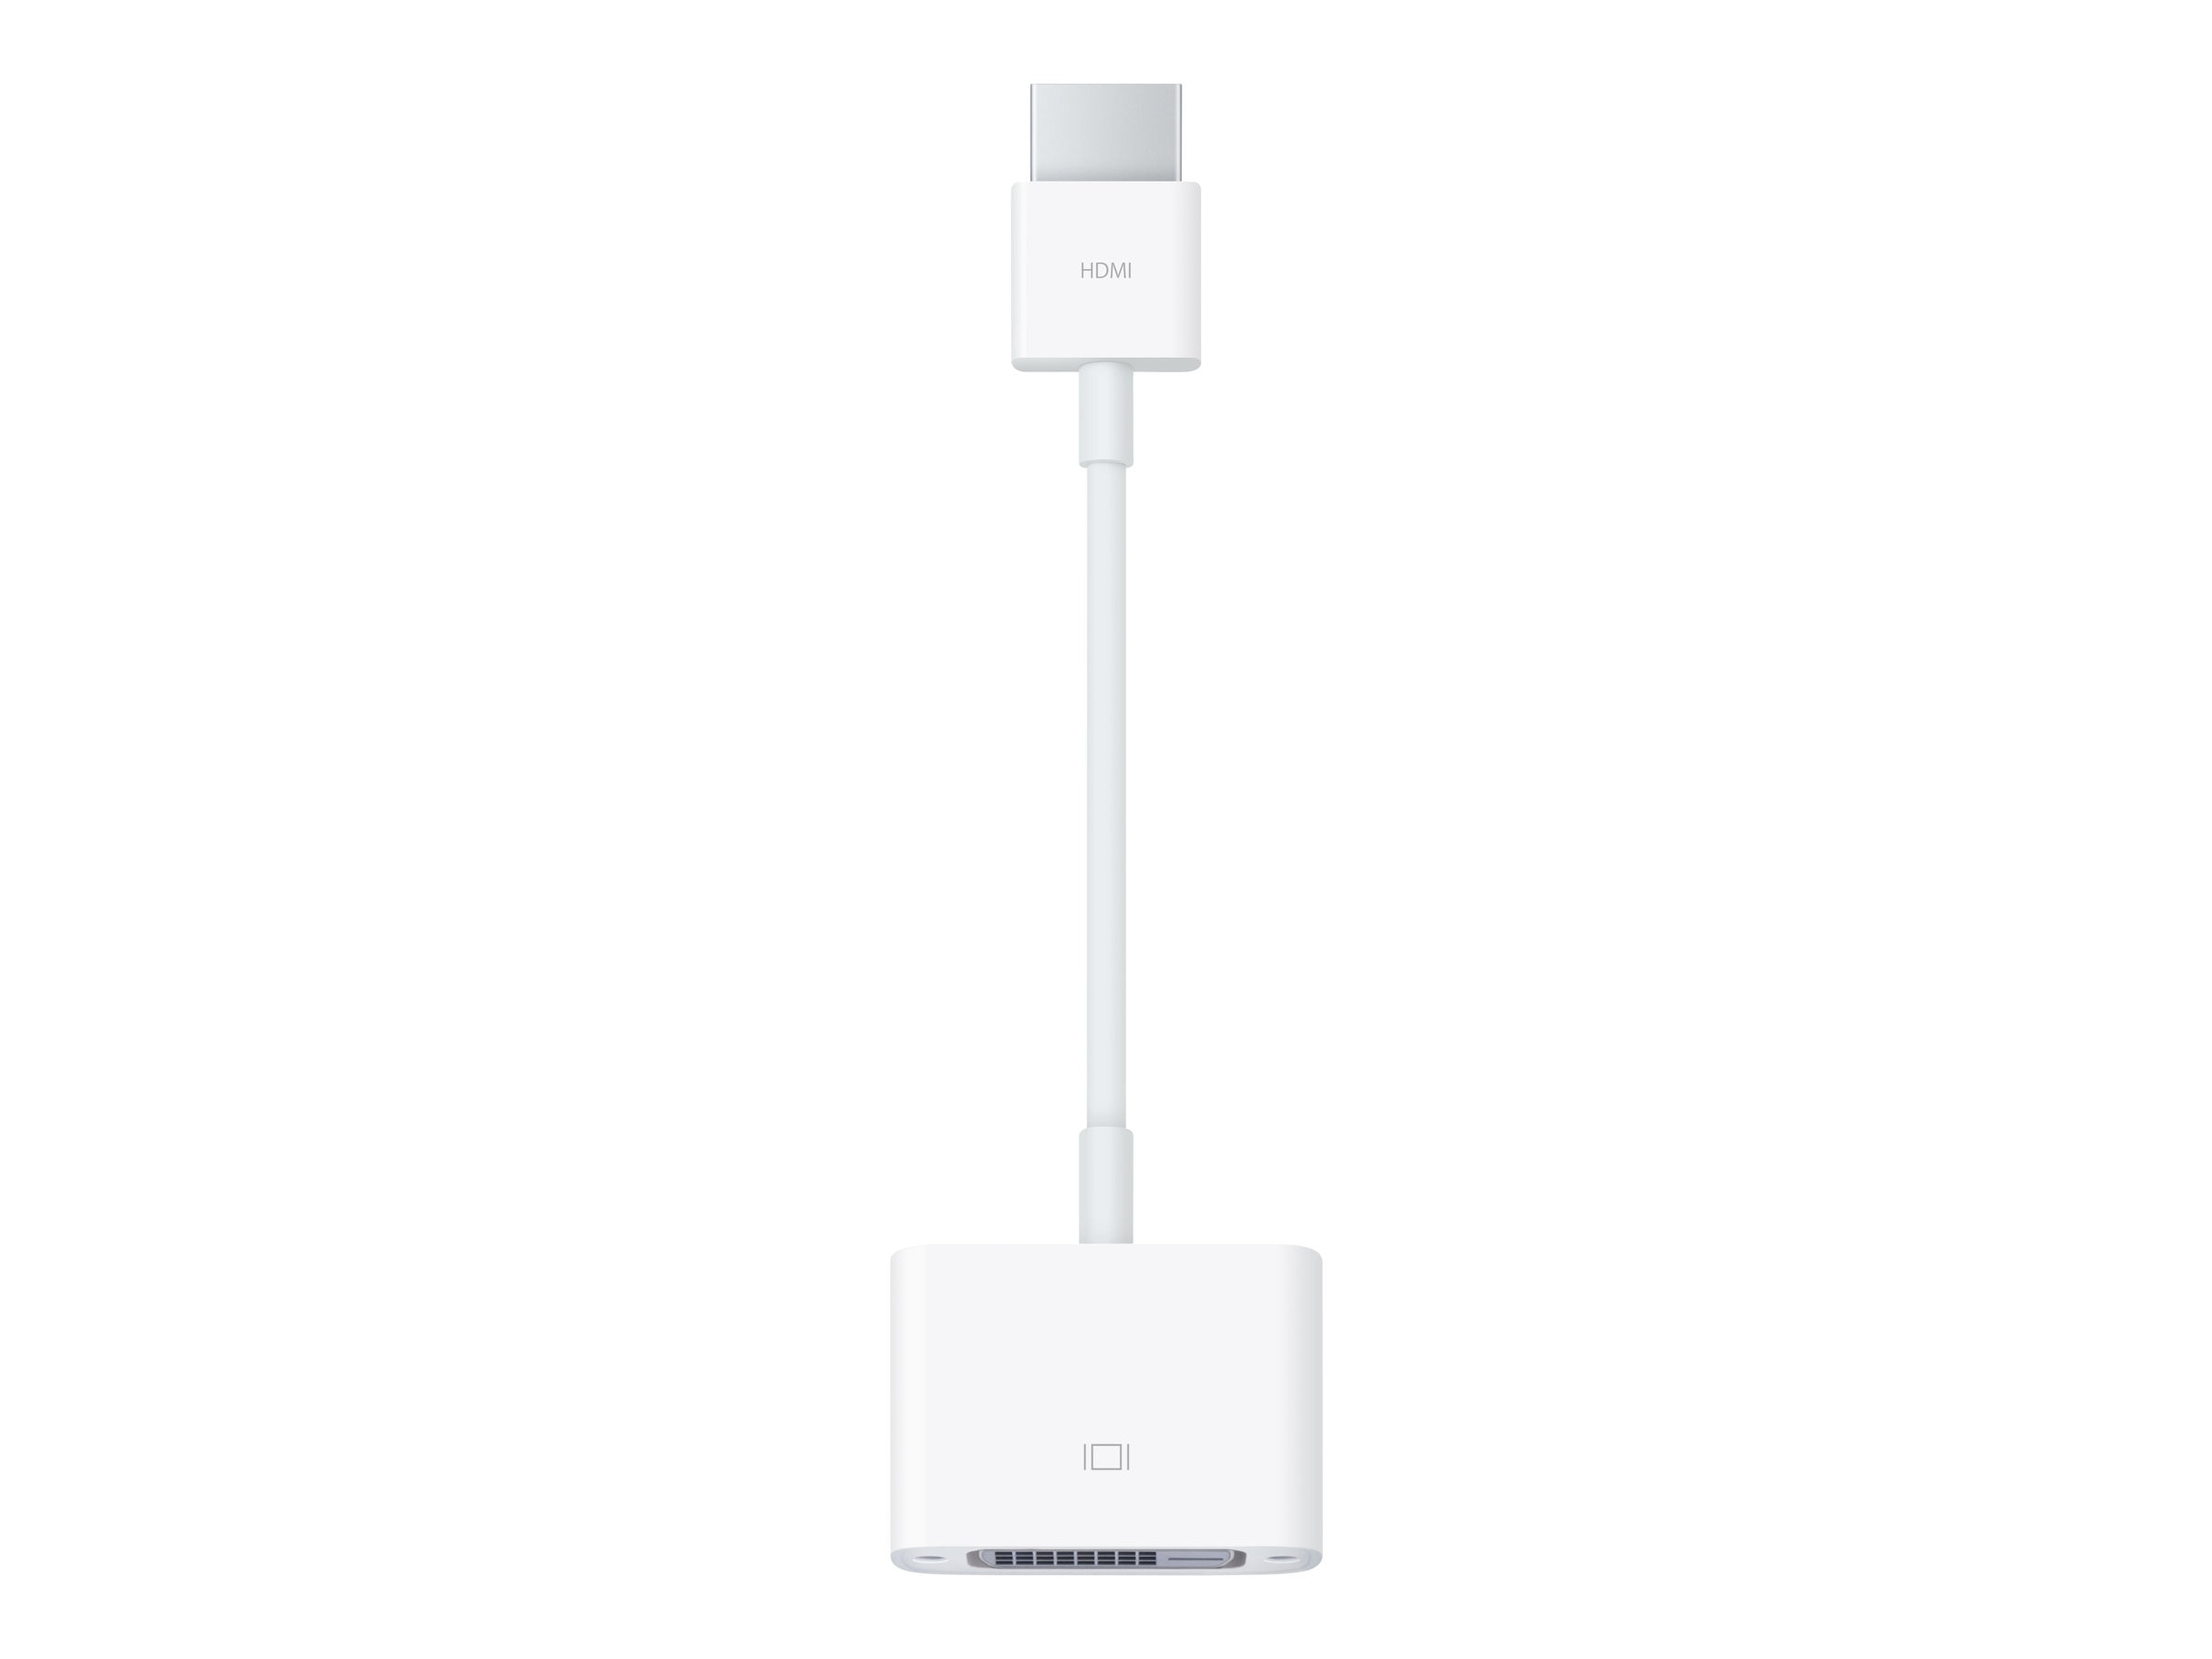 Apple HDMI to DVI Adapter, MJVU2AM/A